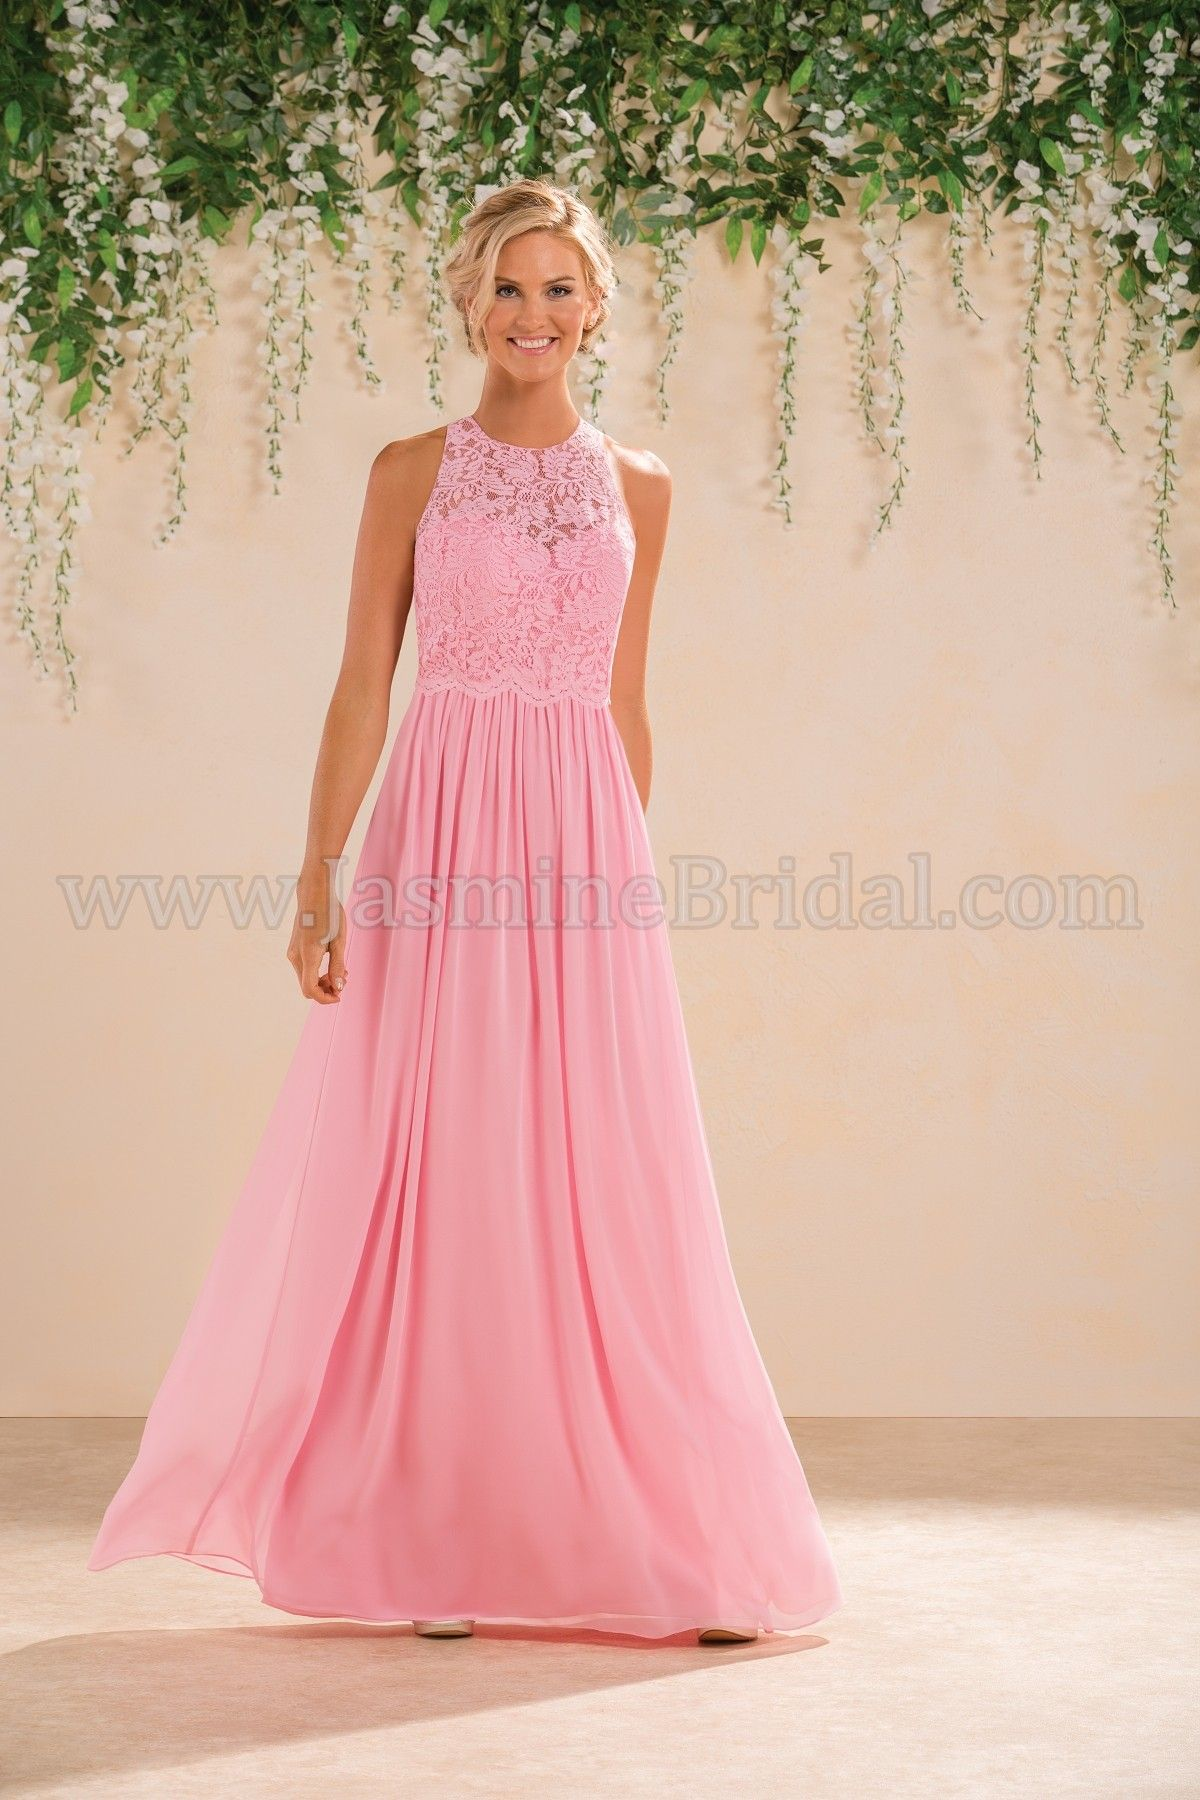 Jasmine bridal bridesmaid dress b2 style b183017 in cosmopolitan jasmine bridal bridesmaid dress b2 style b183017 in cosmopolitan pink ombrellifo Image collections